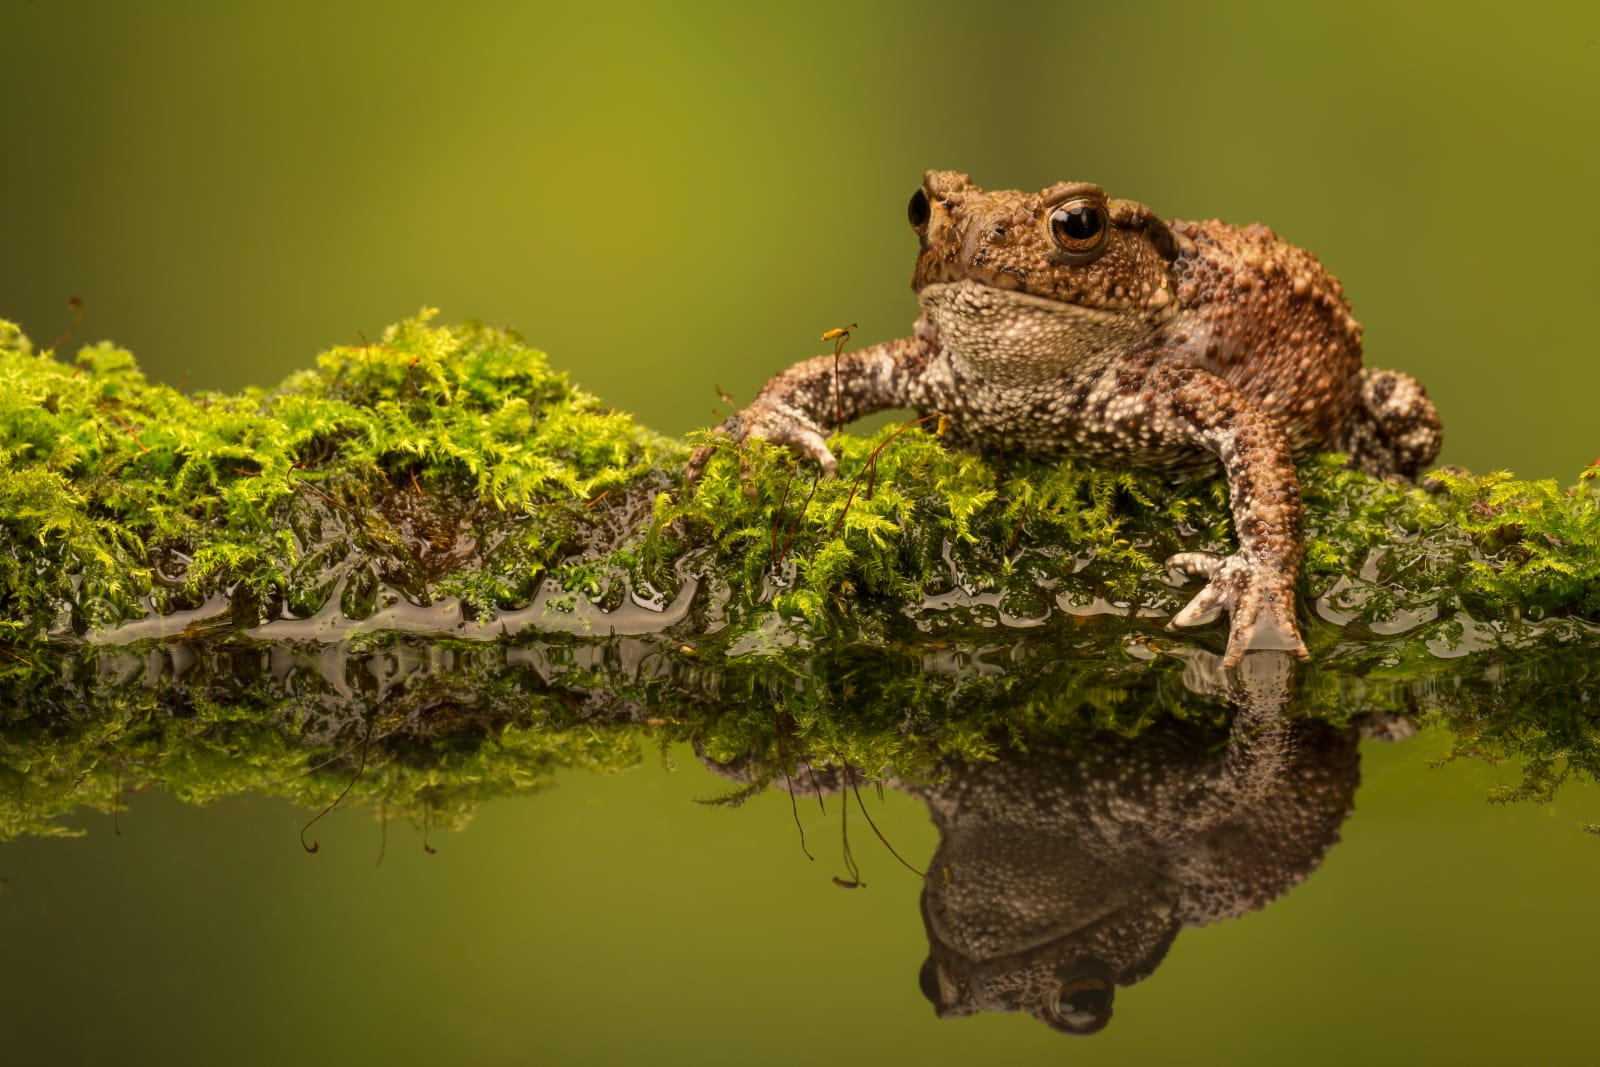 A wild common toad sitting on a mossy log